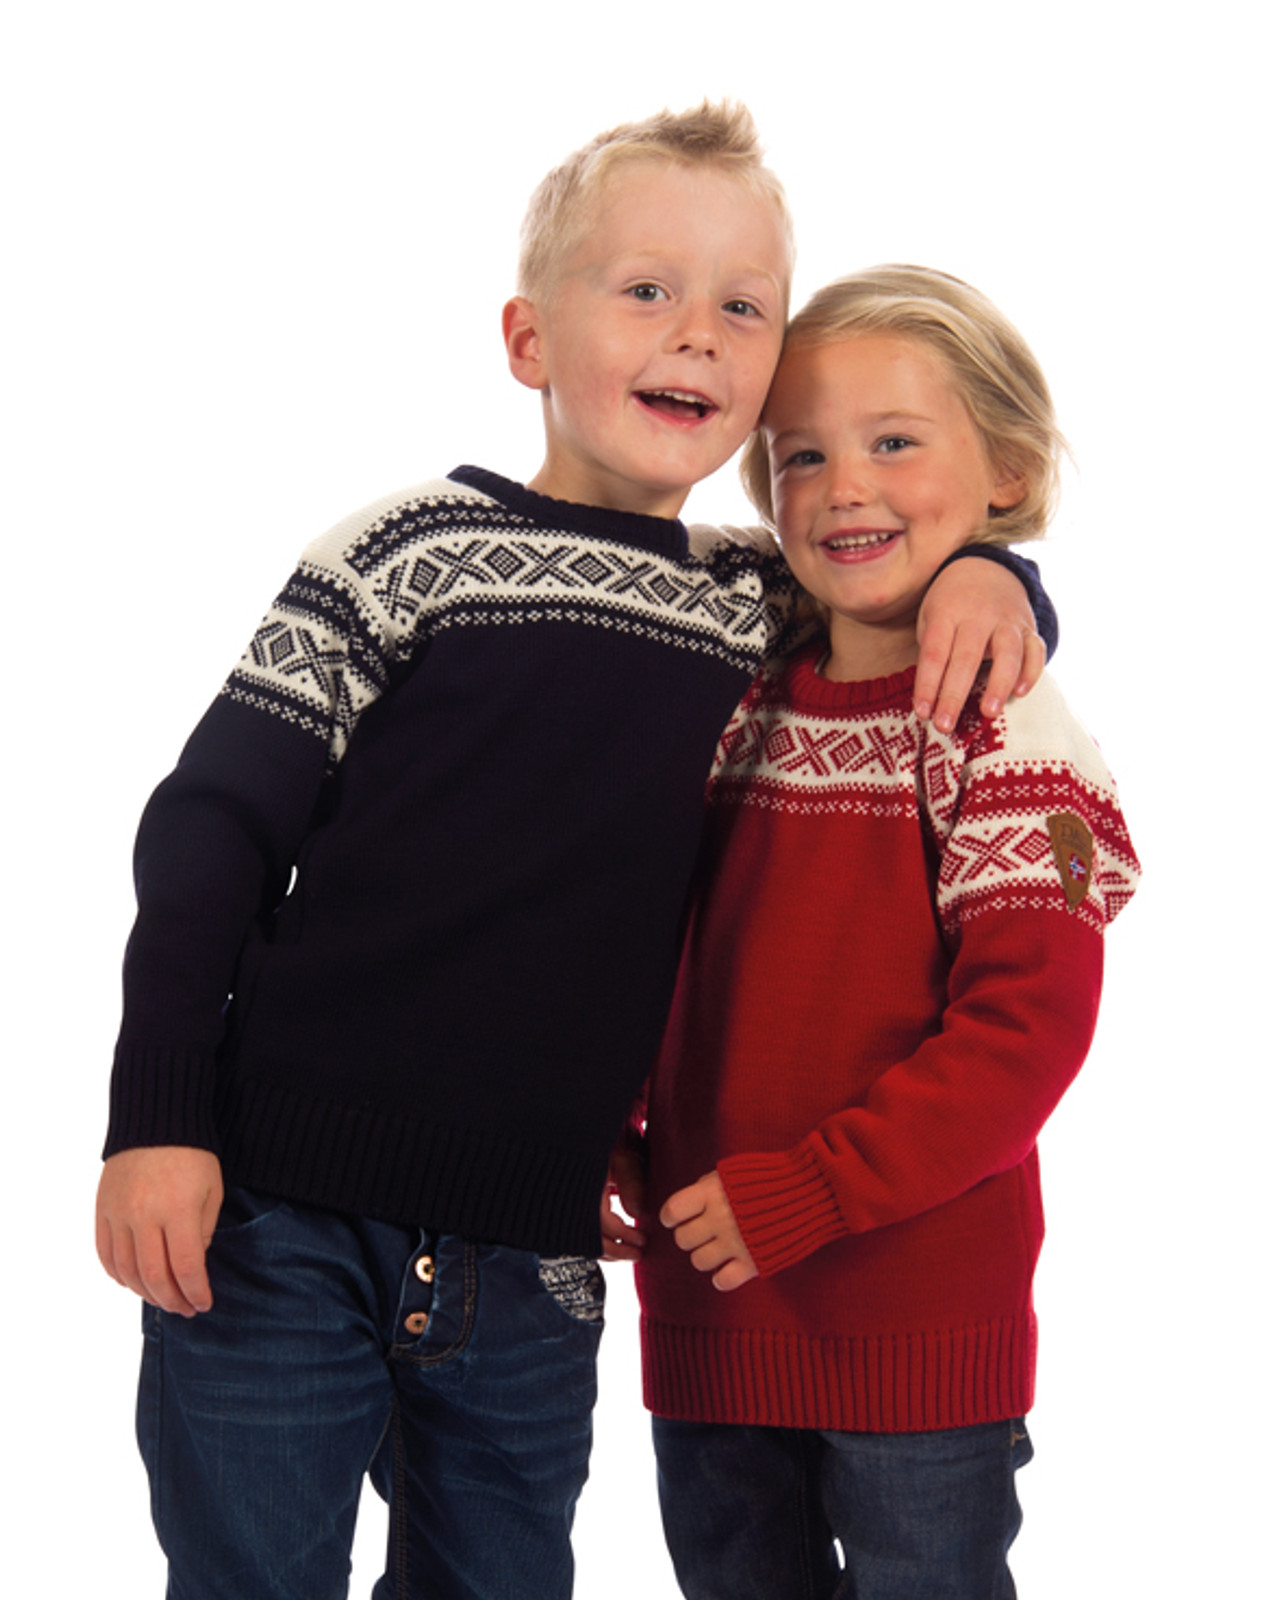 Children showing the different colors of the Dale of Norway Cortina kids sweater. The colors are Navy/Off White, 92991-C and Raspberry/Off White, 92991-B